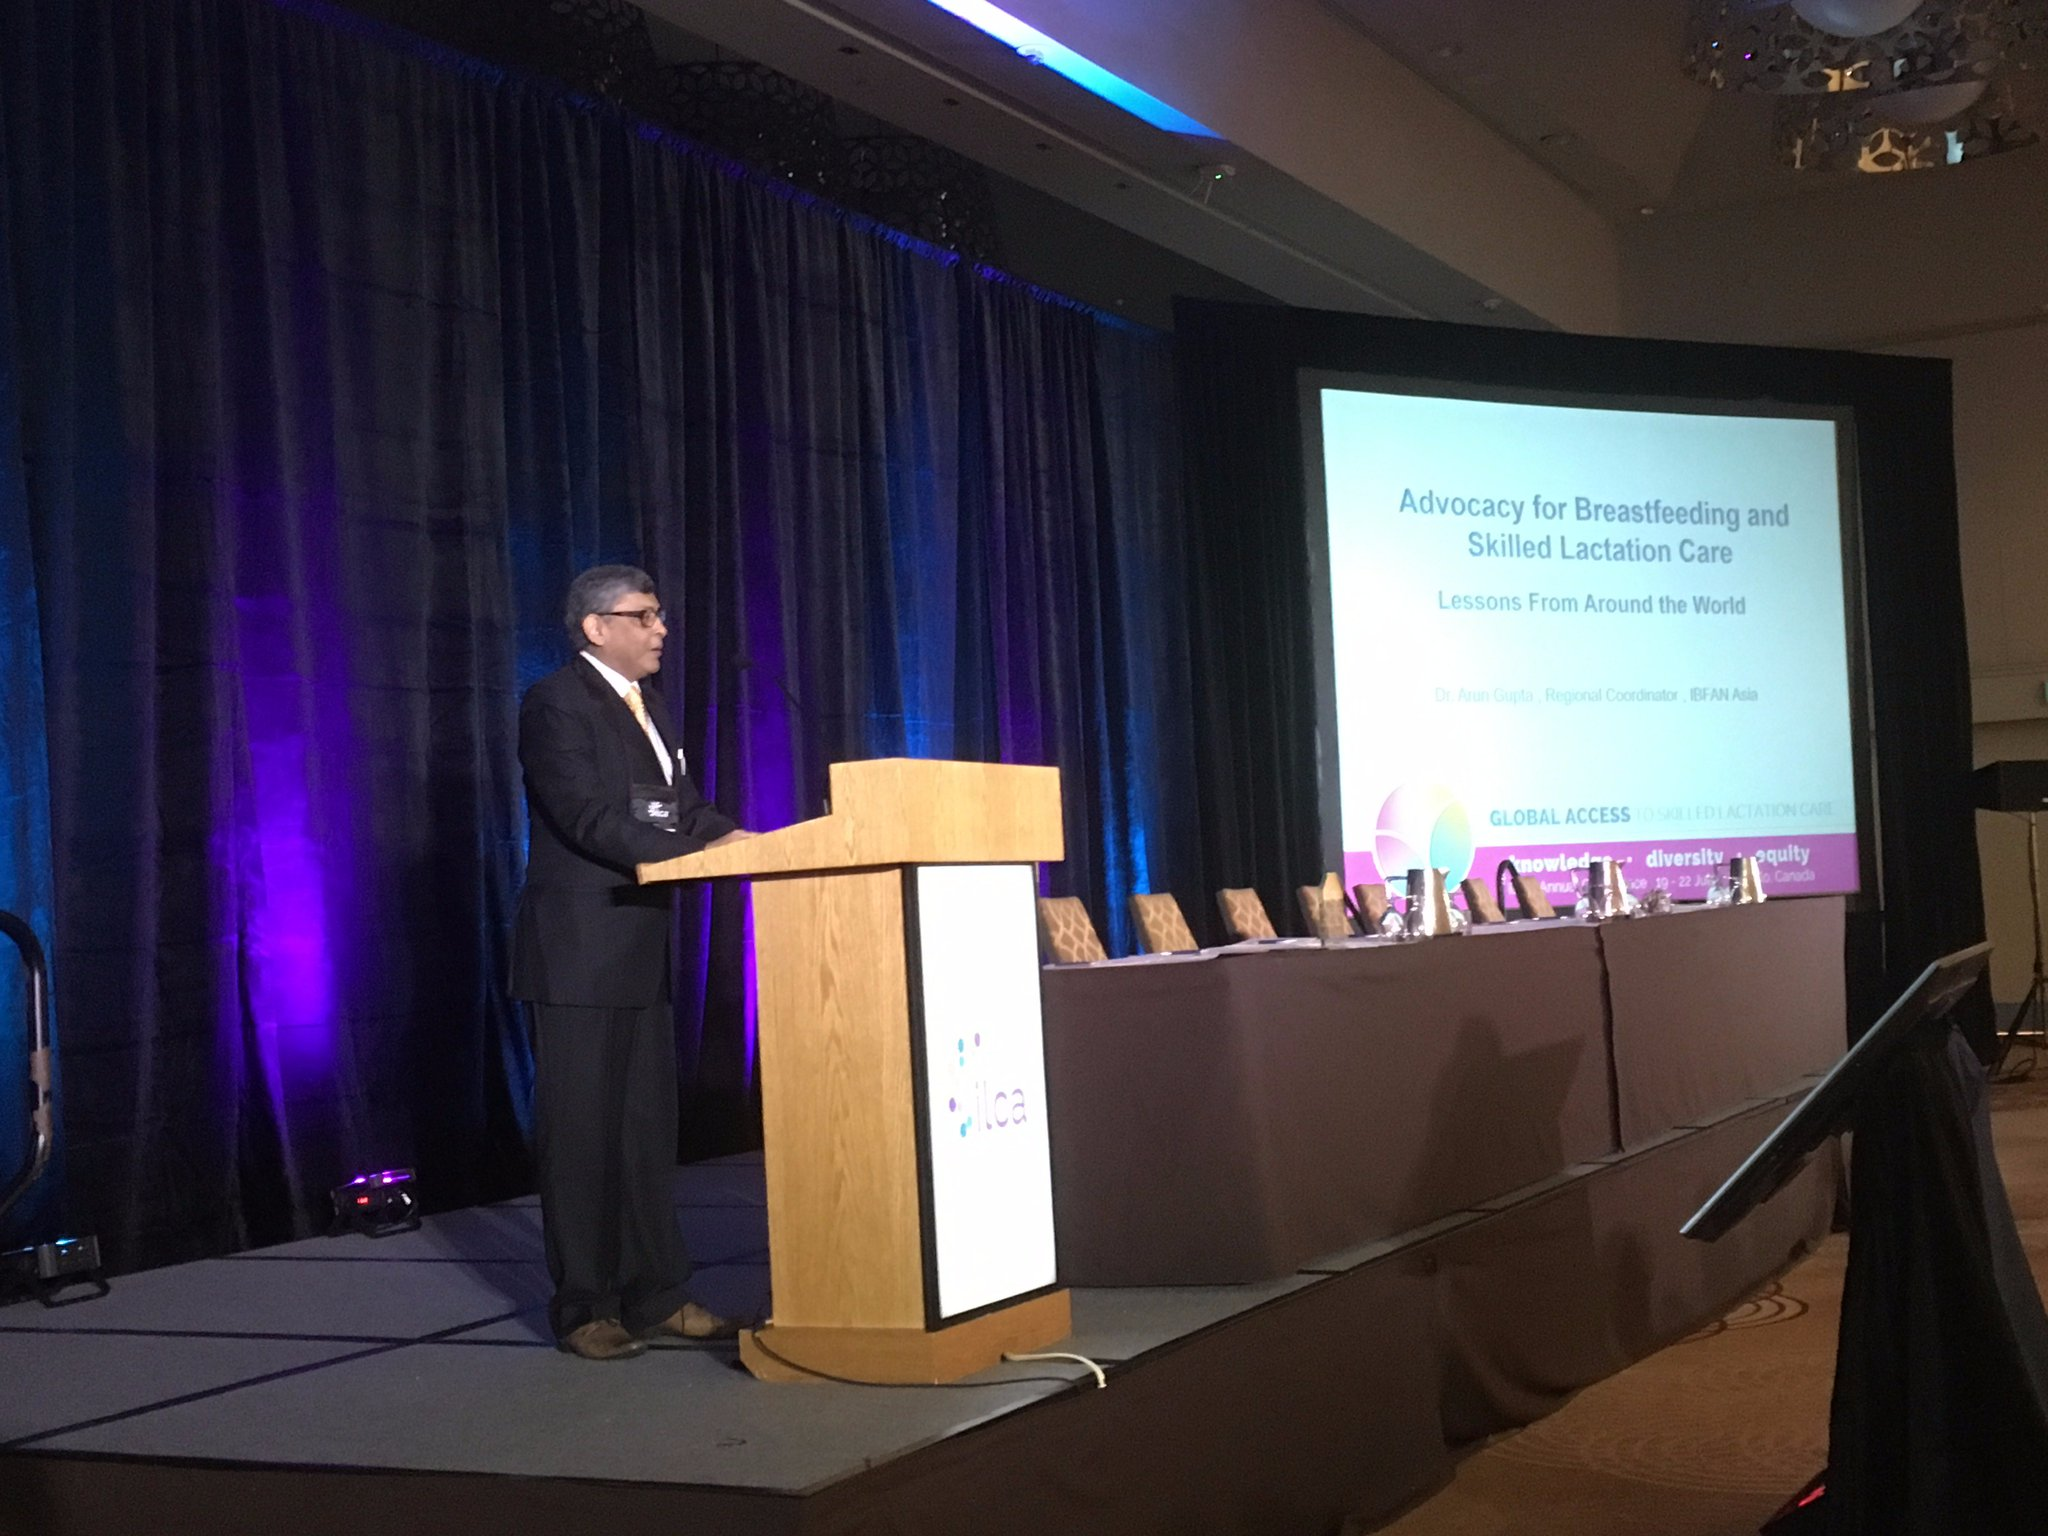 Dr Arun Gupta @Moveribfan on Advocacy for Breastfeeding and Skilled Lactation Care: Lessons from around the World at #ILCA17. https://t.co/4NAPxLC0rO